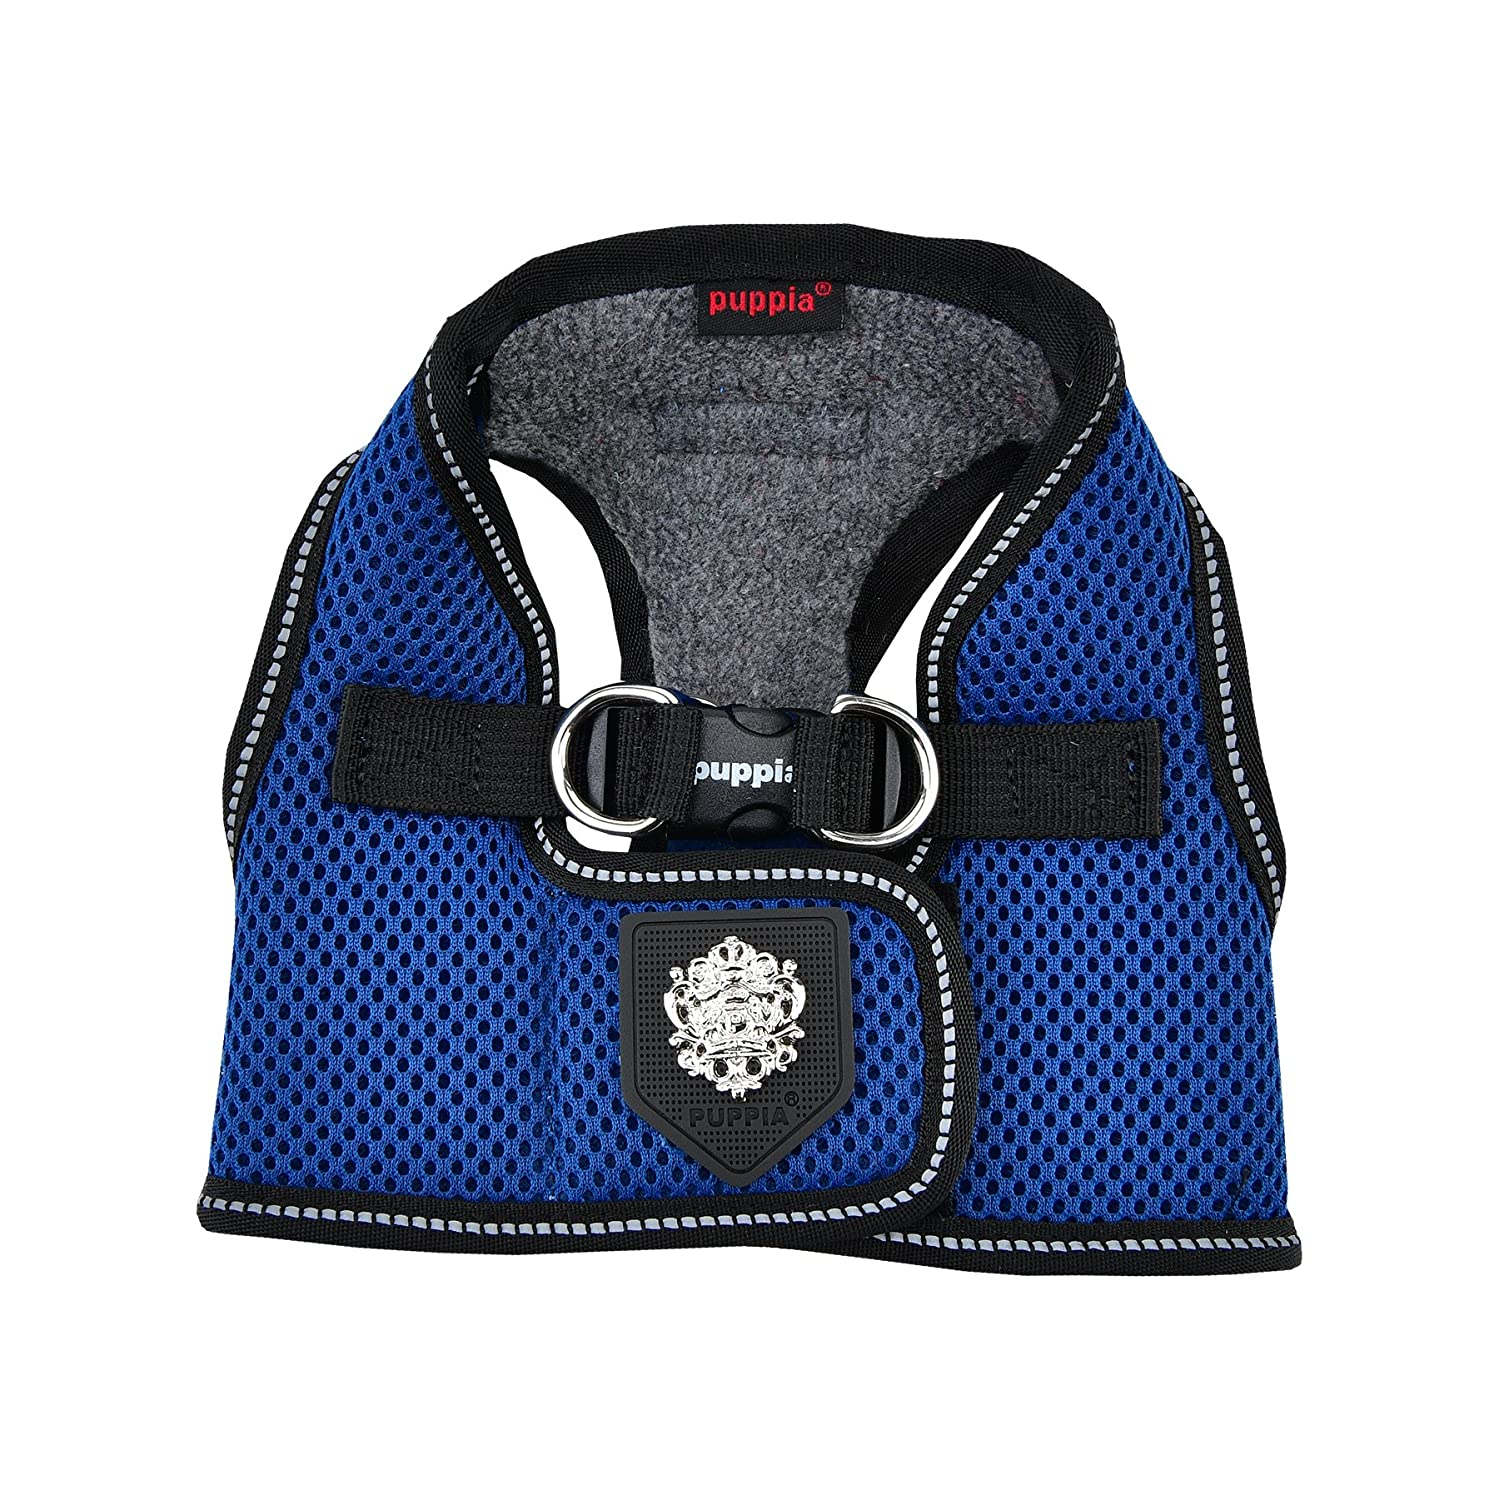 Royal bluee Small Royal bluee Small Puppia Thermal Soft Vest Harness®, Small, Royal bluee